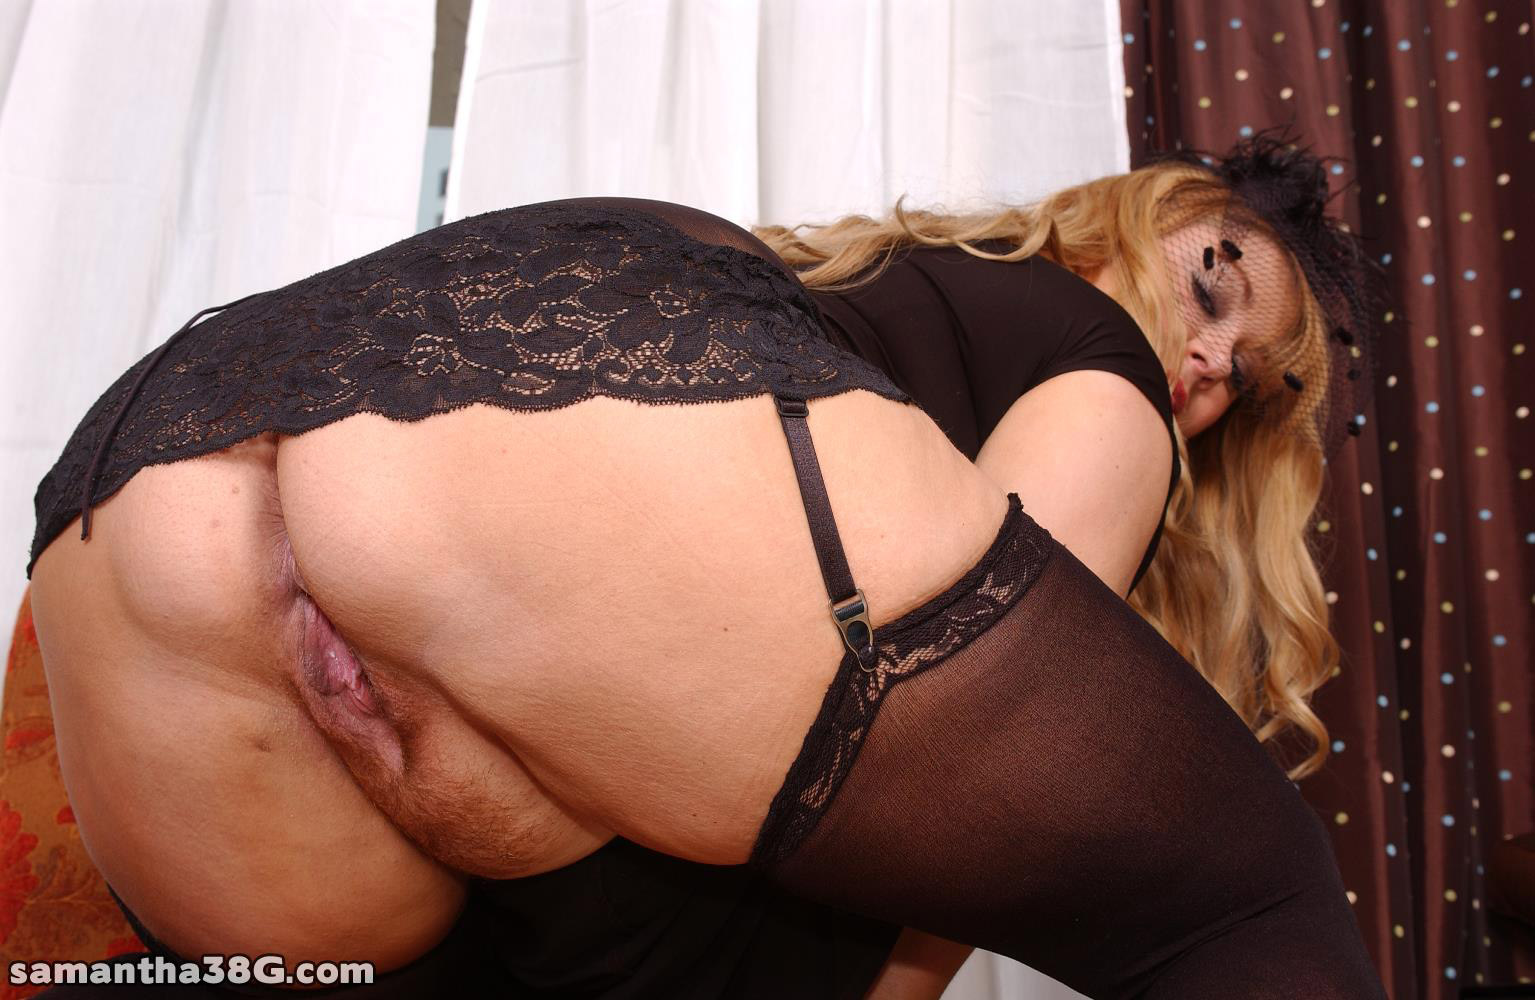 Big Ass Milf Blowjob Lingerie